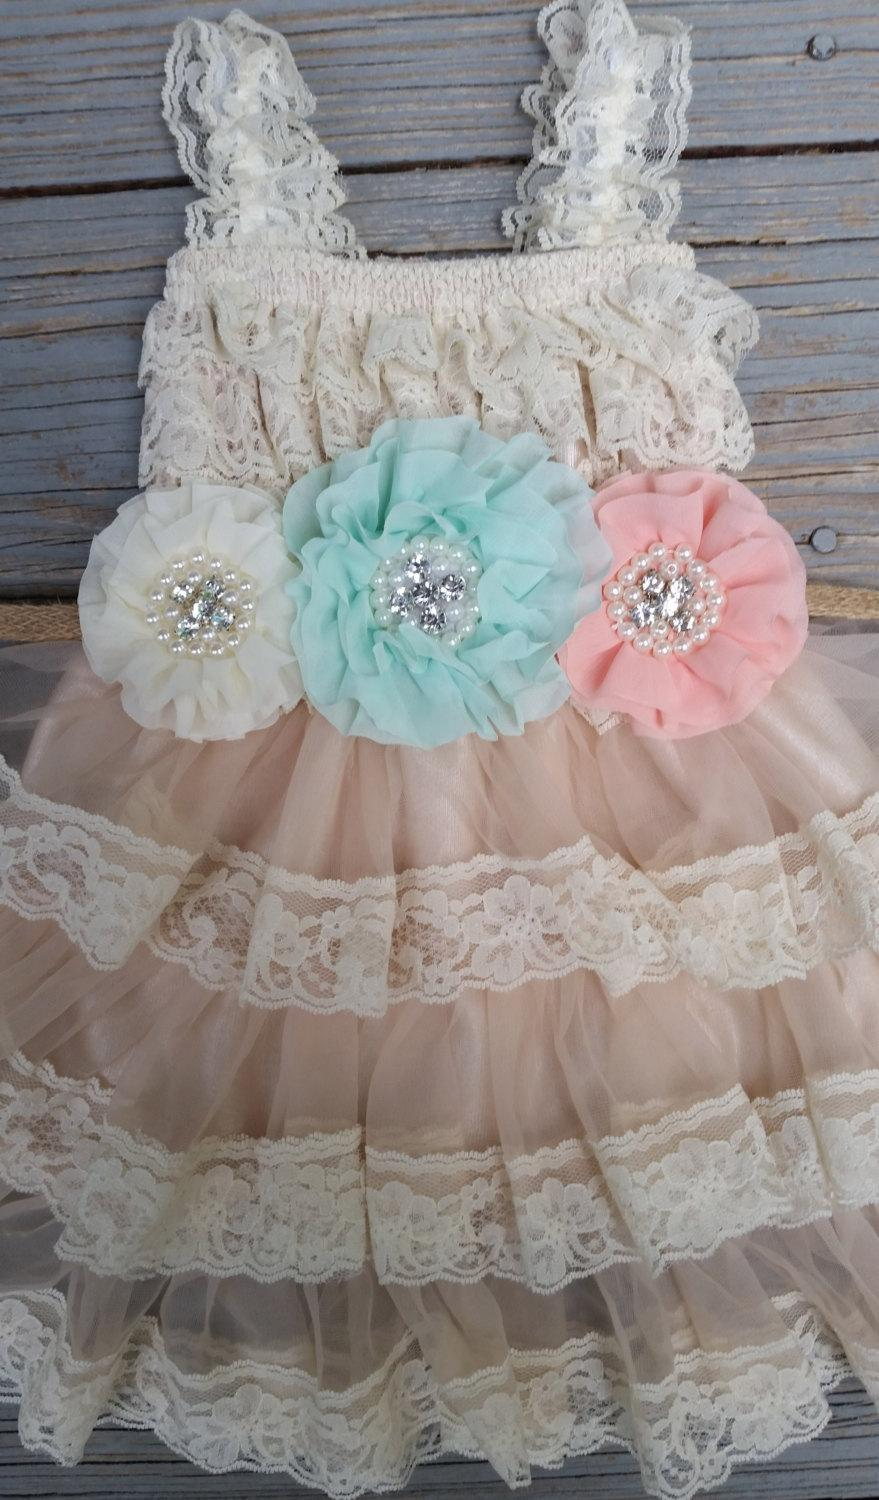 Wedding - Mint-Peach-Ivory Flower Girl Lace Dress/Rustic Flower Girl-Champagne Flower Girl/Country Wedding-Mint-Flower Girl Dress-Shabby Chic